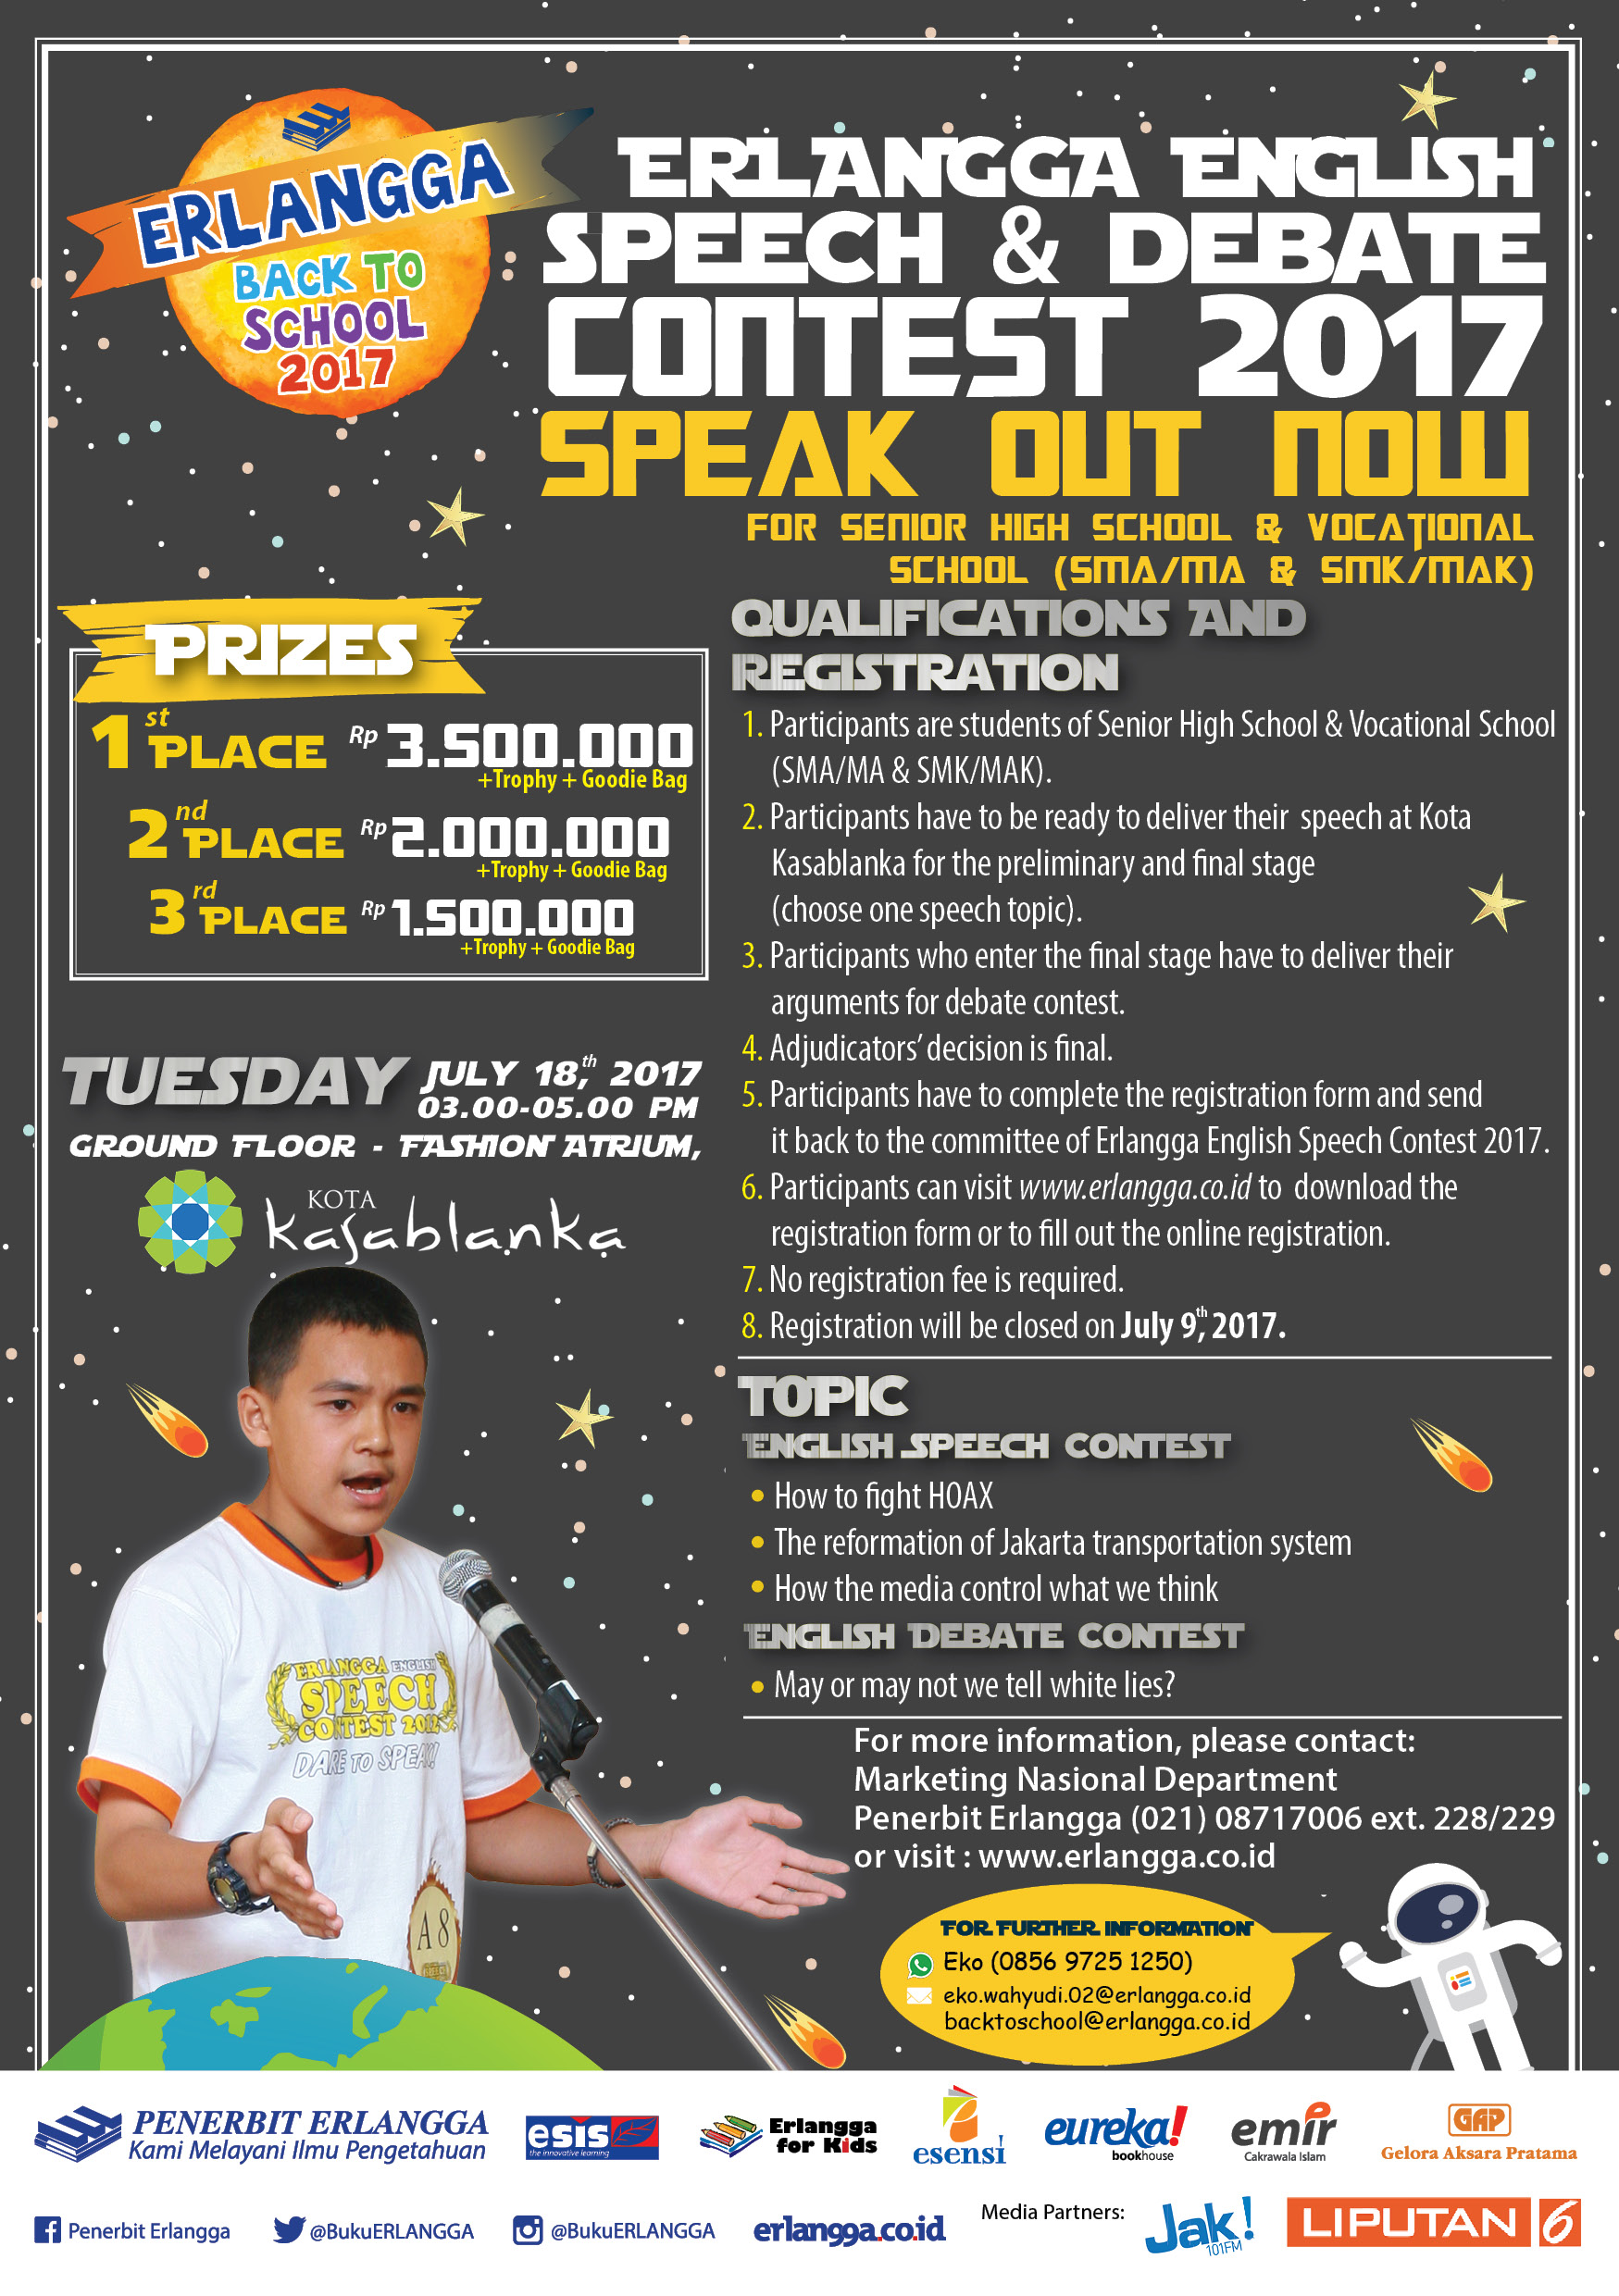 Erlangga English Speech & Debate Contest 2017  for Junior High School